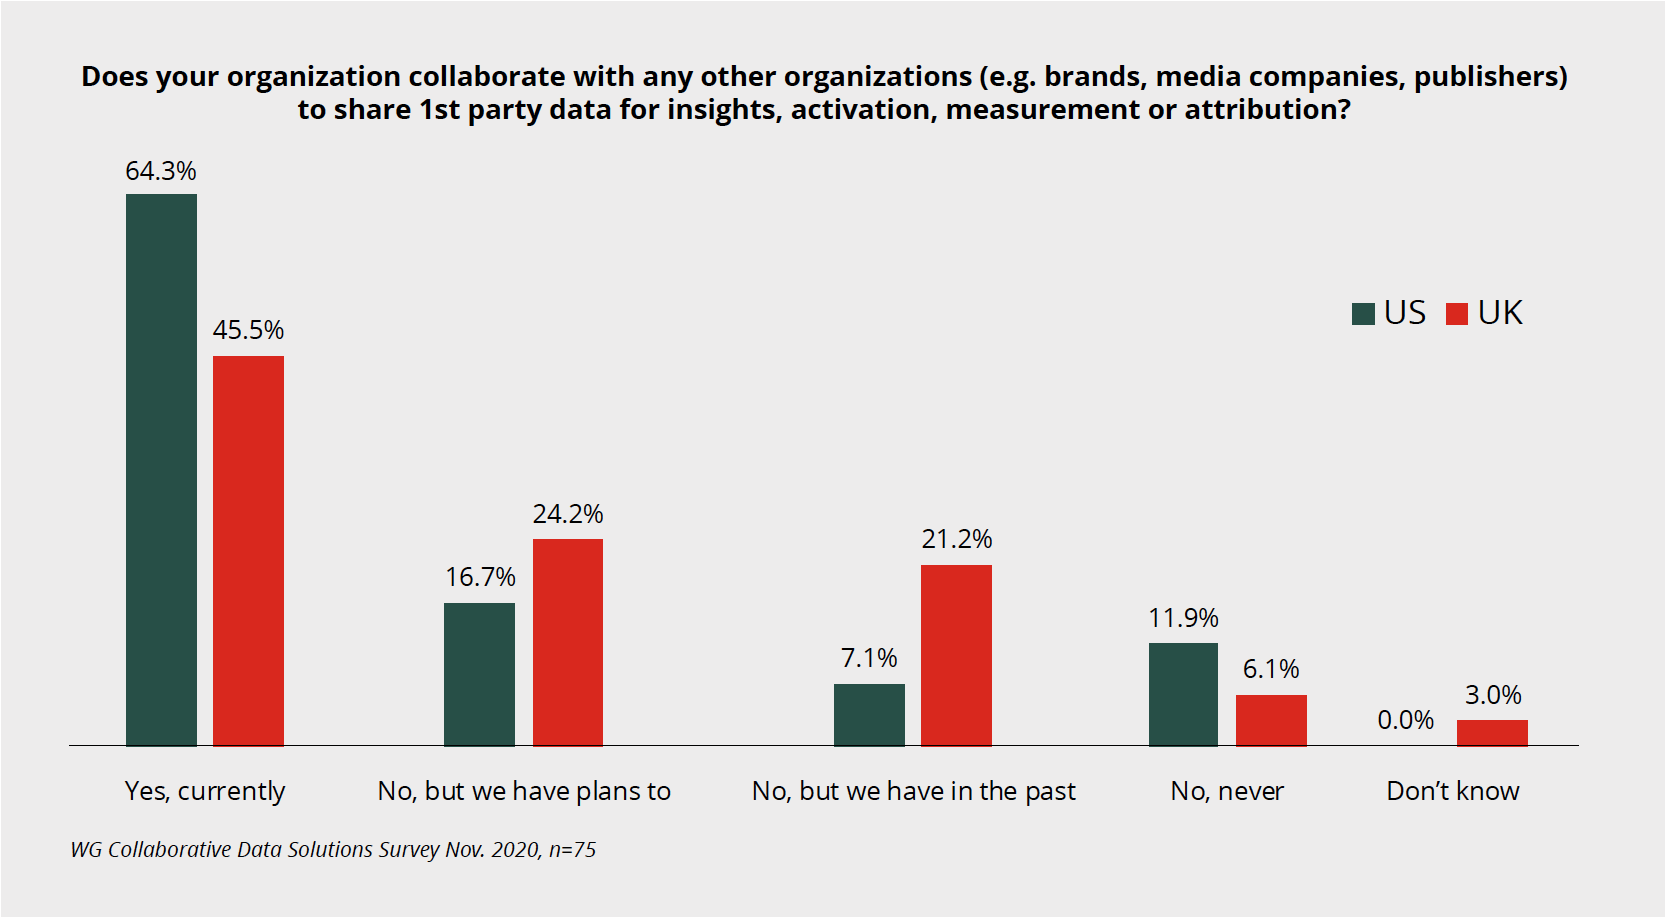 Graph: Does your organization collaborate with any other organizations to share 1st party data for insights, activation, measurement or attribution?